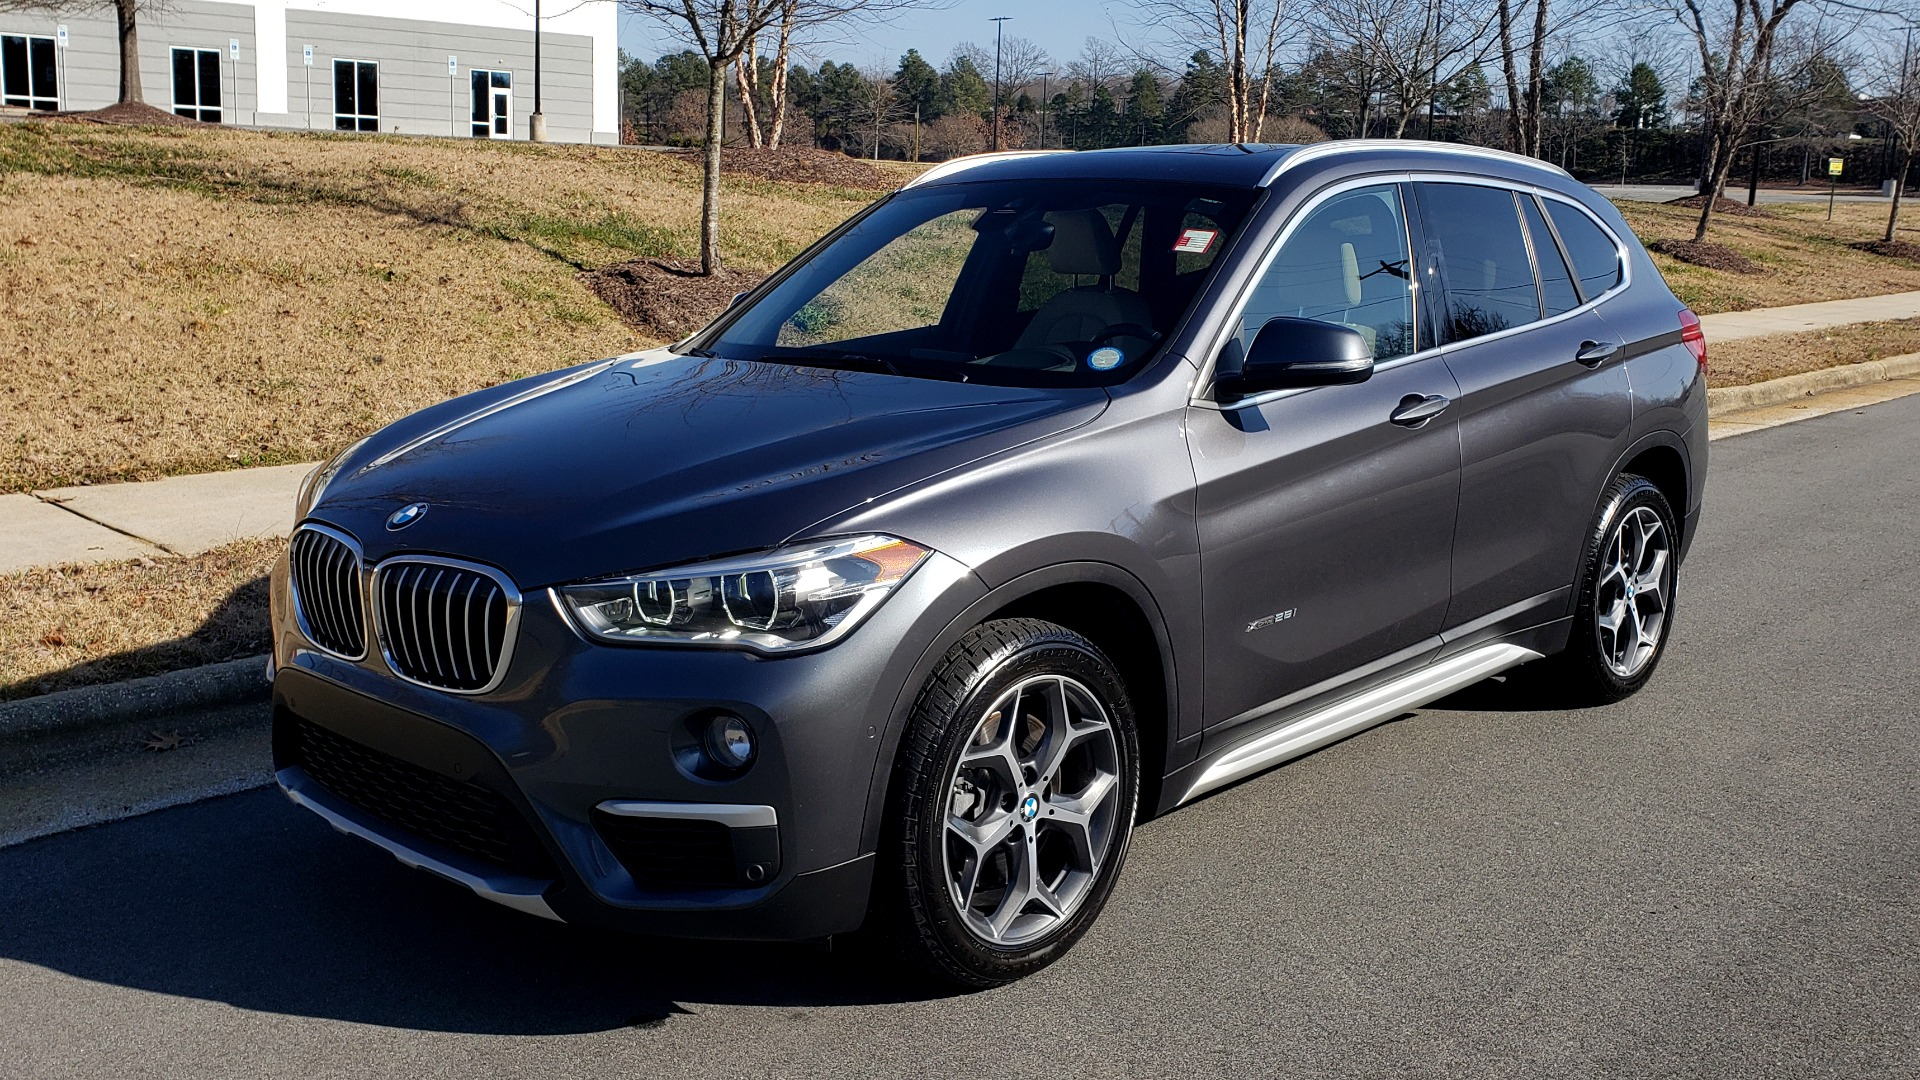 Used 2017 BMW X1 XDRIVE28I / PREM / TECH / DRVR ASST PLUS / COLD WTHR / REARVIEW for sale Sold at Formula Imports in Charlotte NC 28227 1